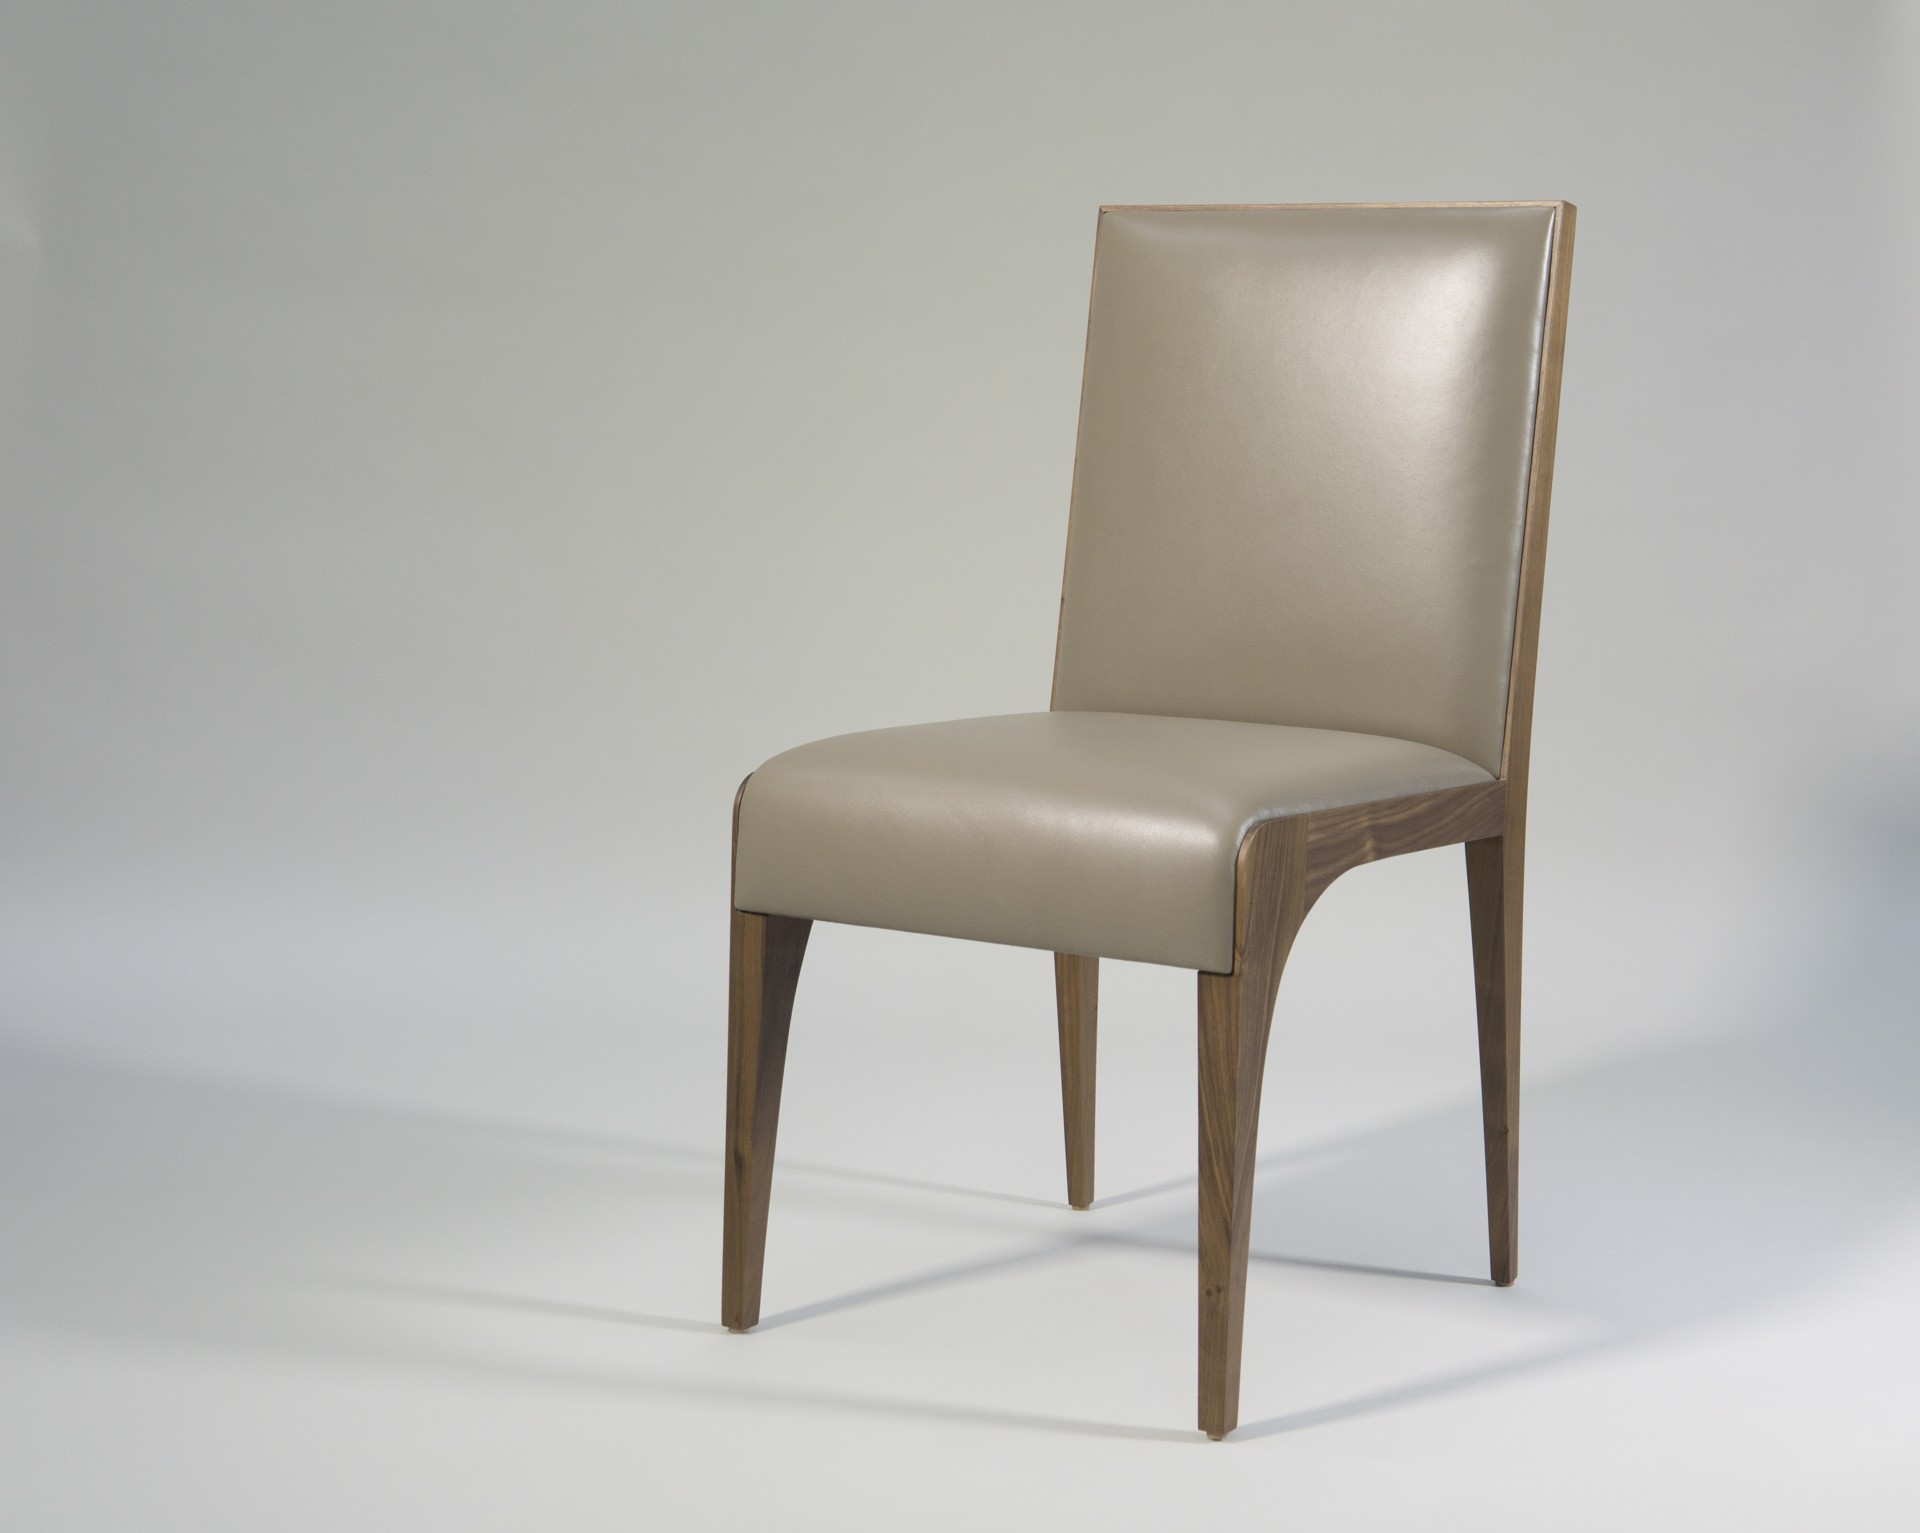 Walnut and Leather chair by Tinatin Kilaberidze